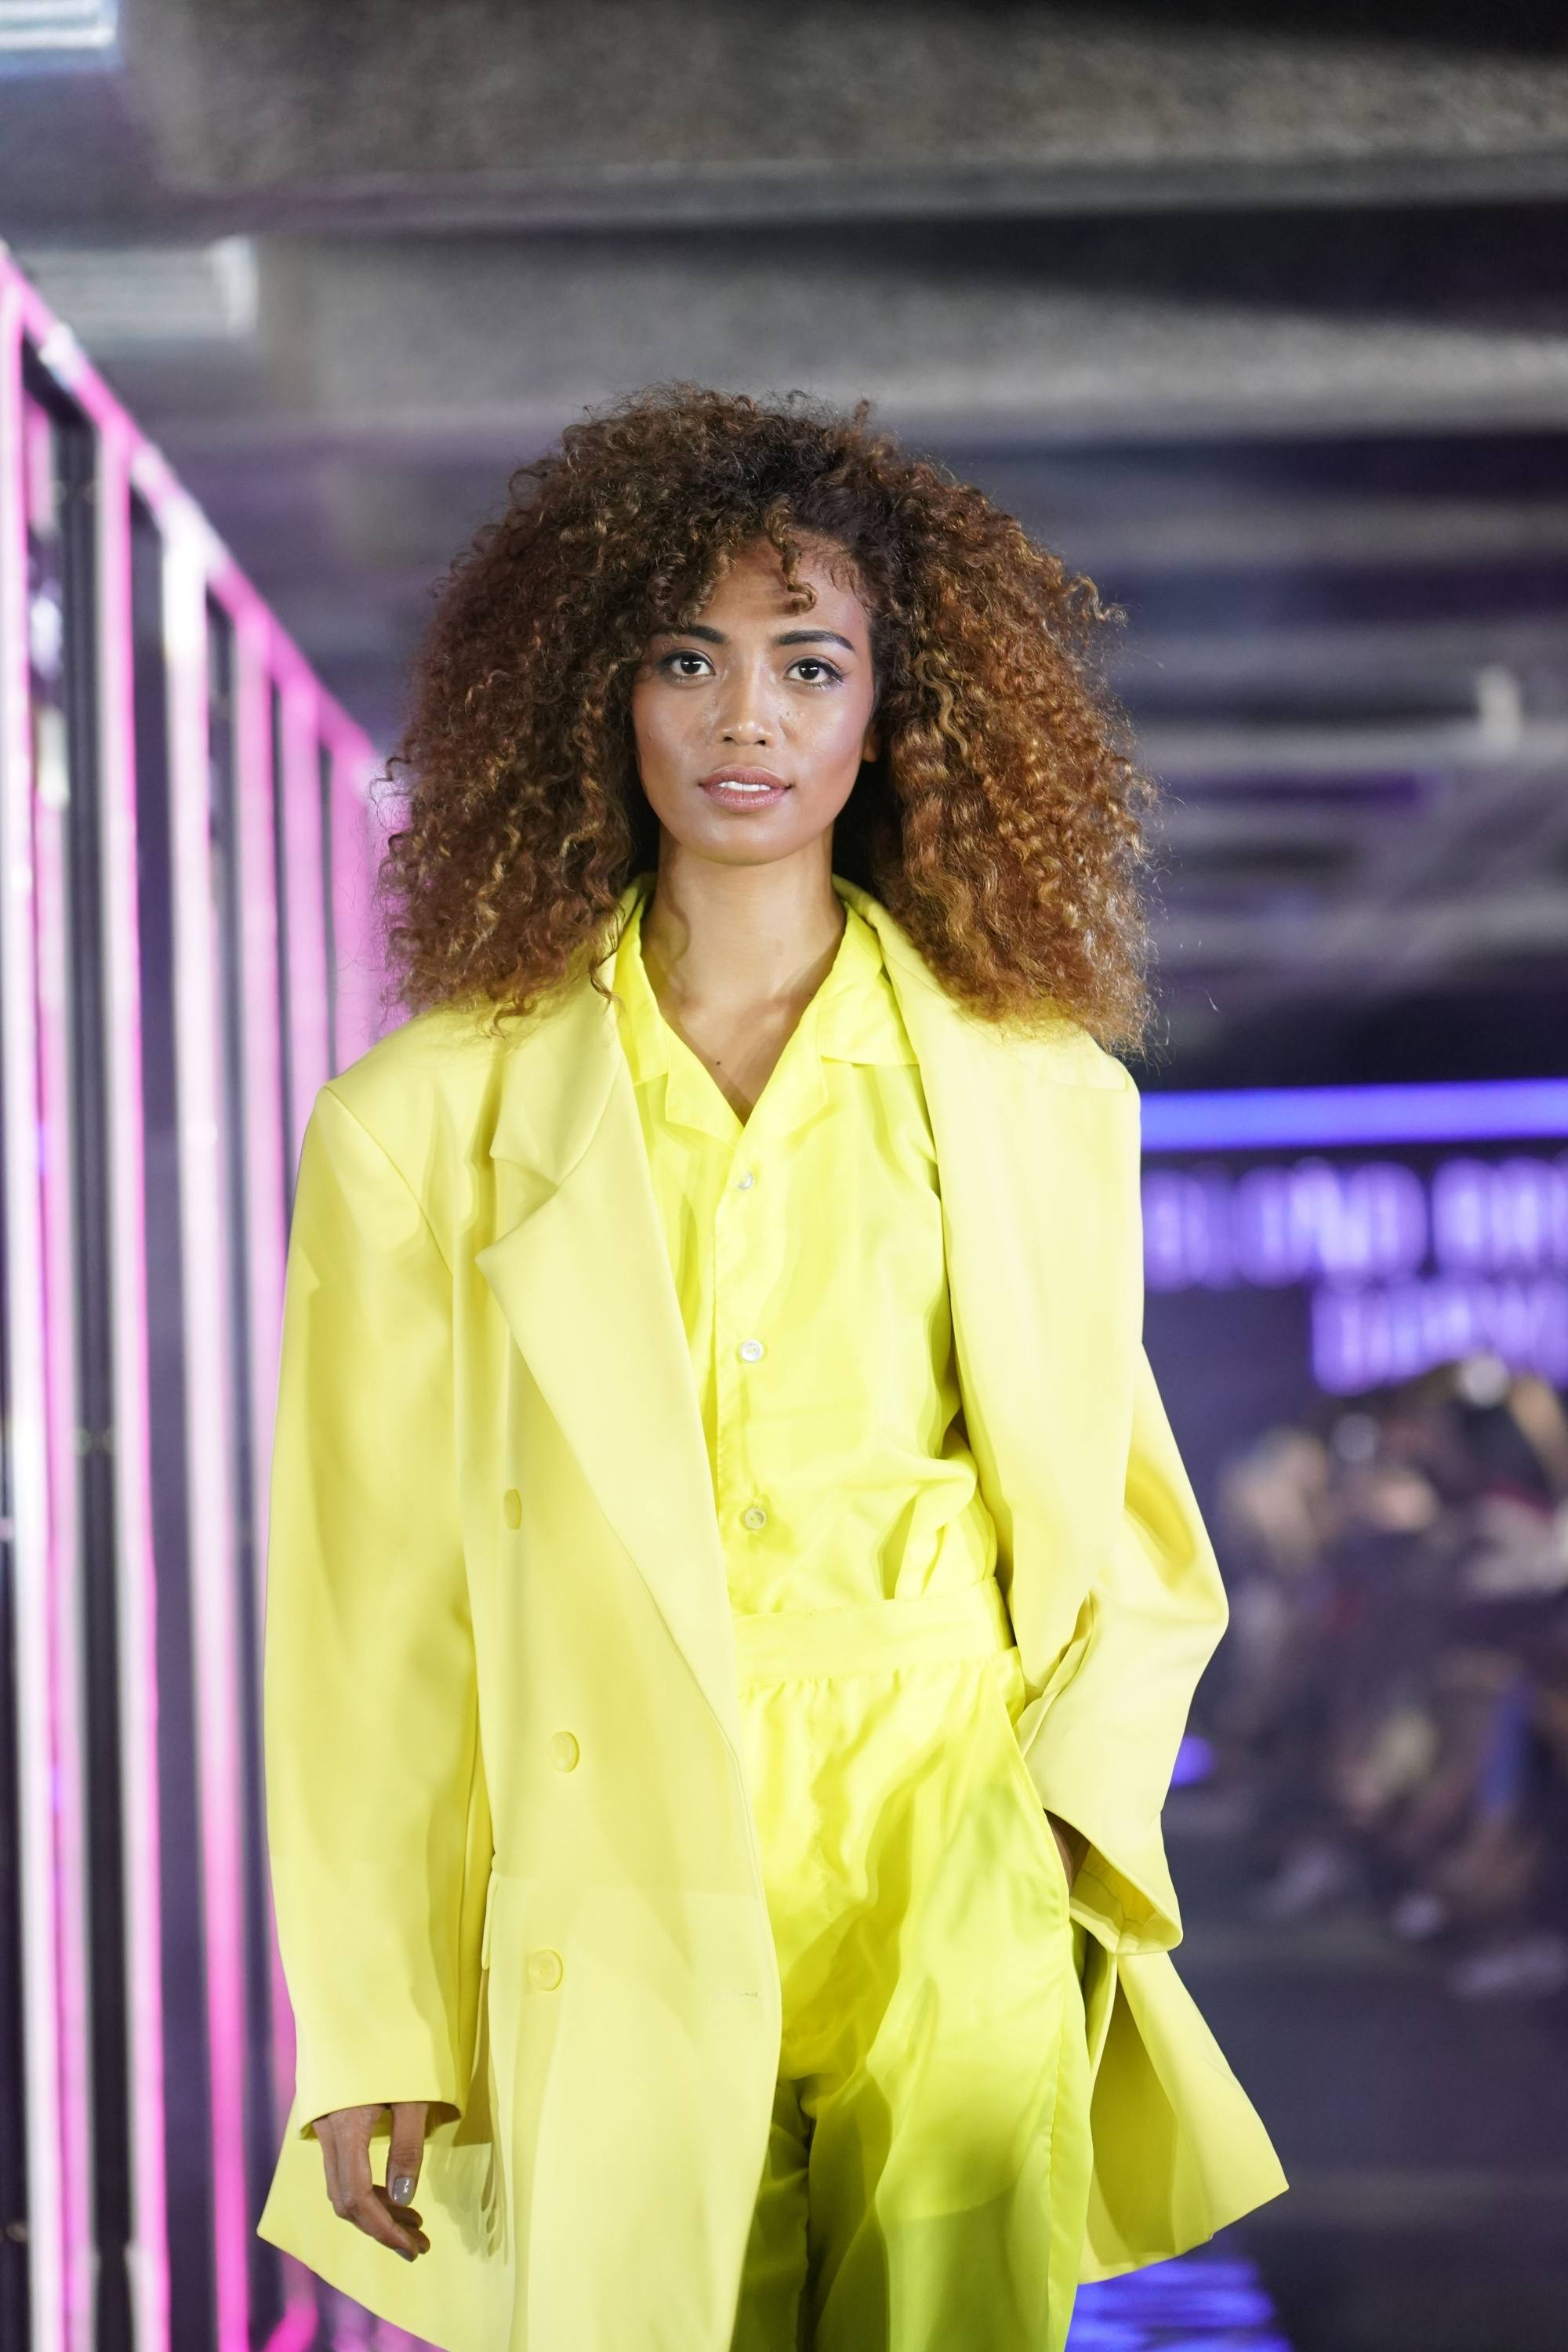 TRESemme Runway 2019: model with chocolate toned curly hair in a yellow pantsuit